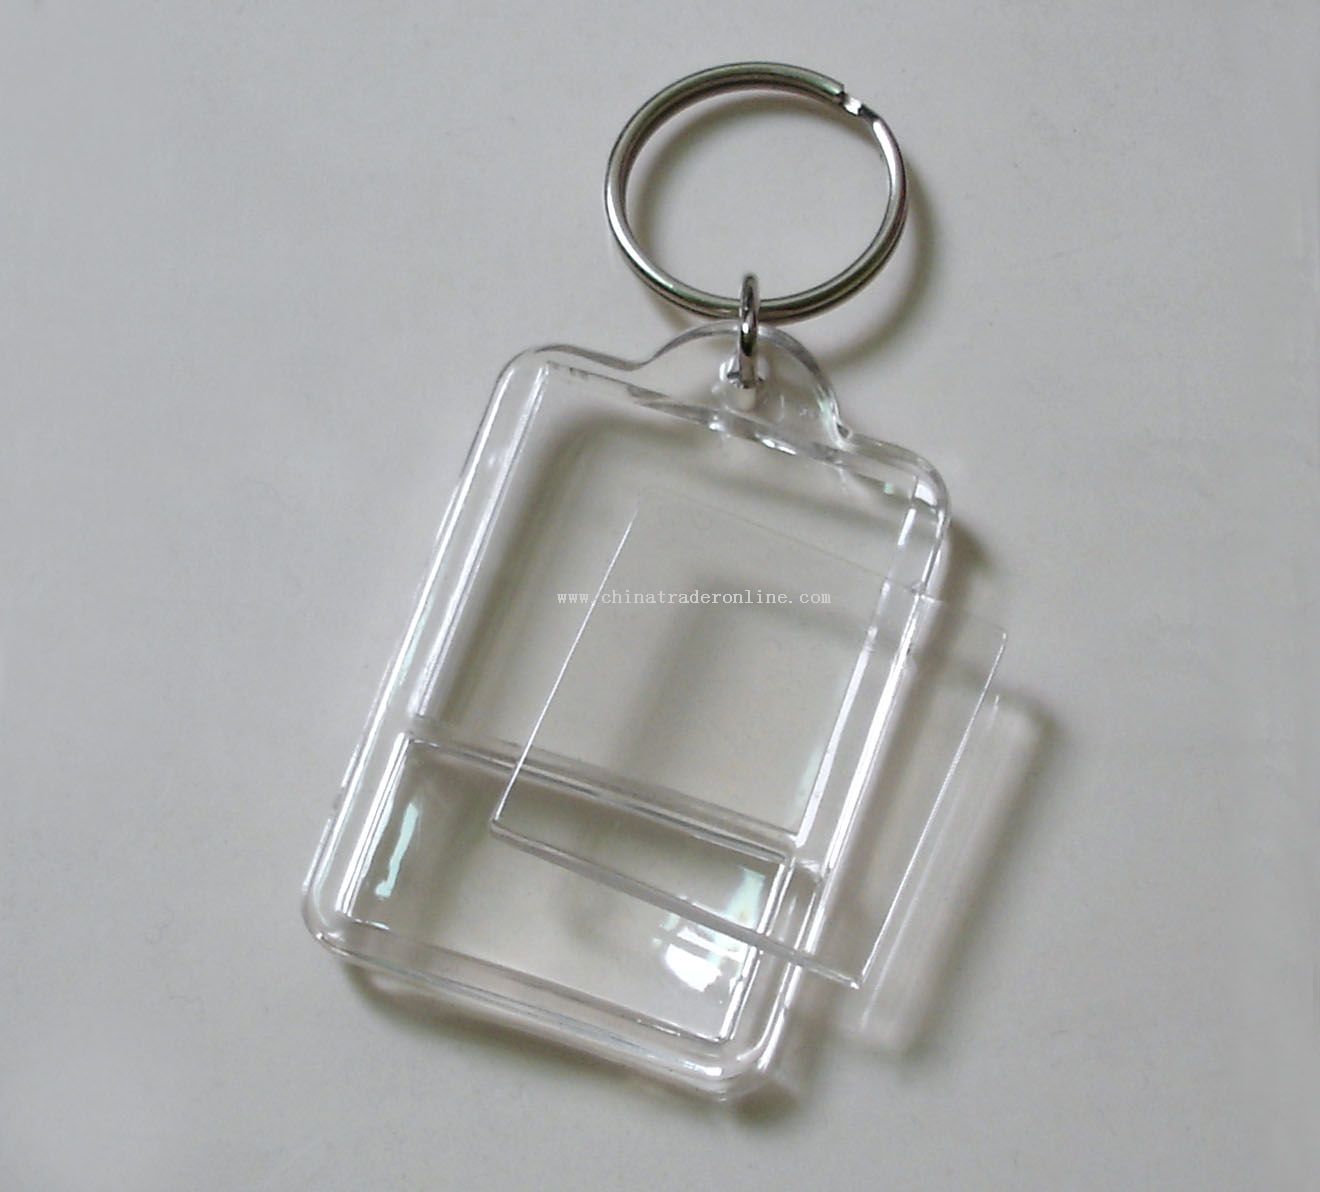 Acrylic keychain with cover